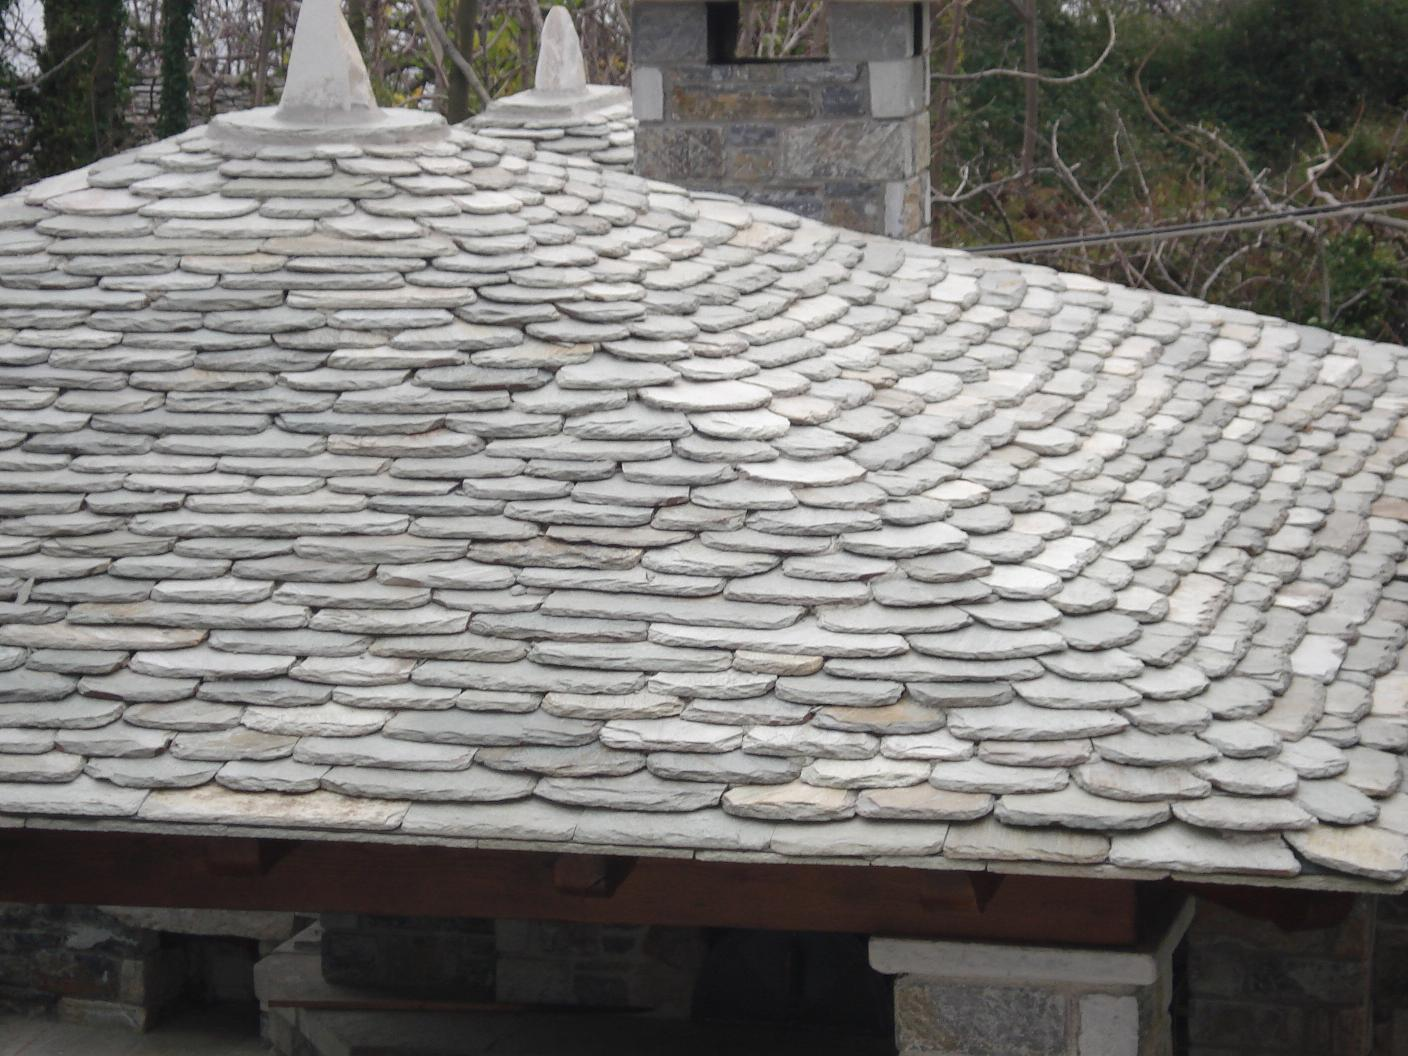 Roof tiles fish-scale type, hewn